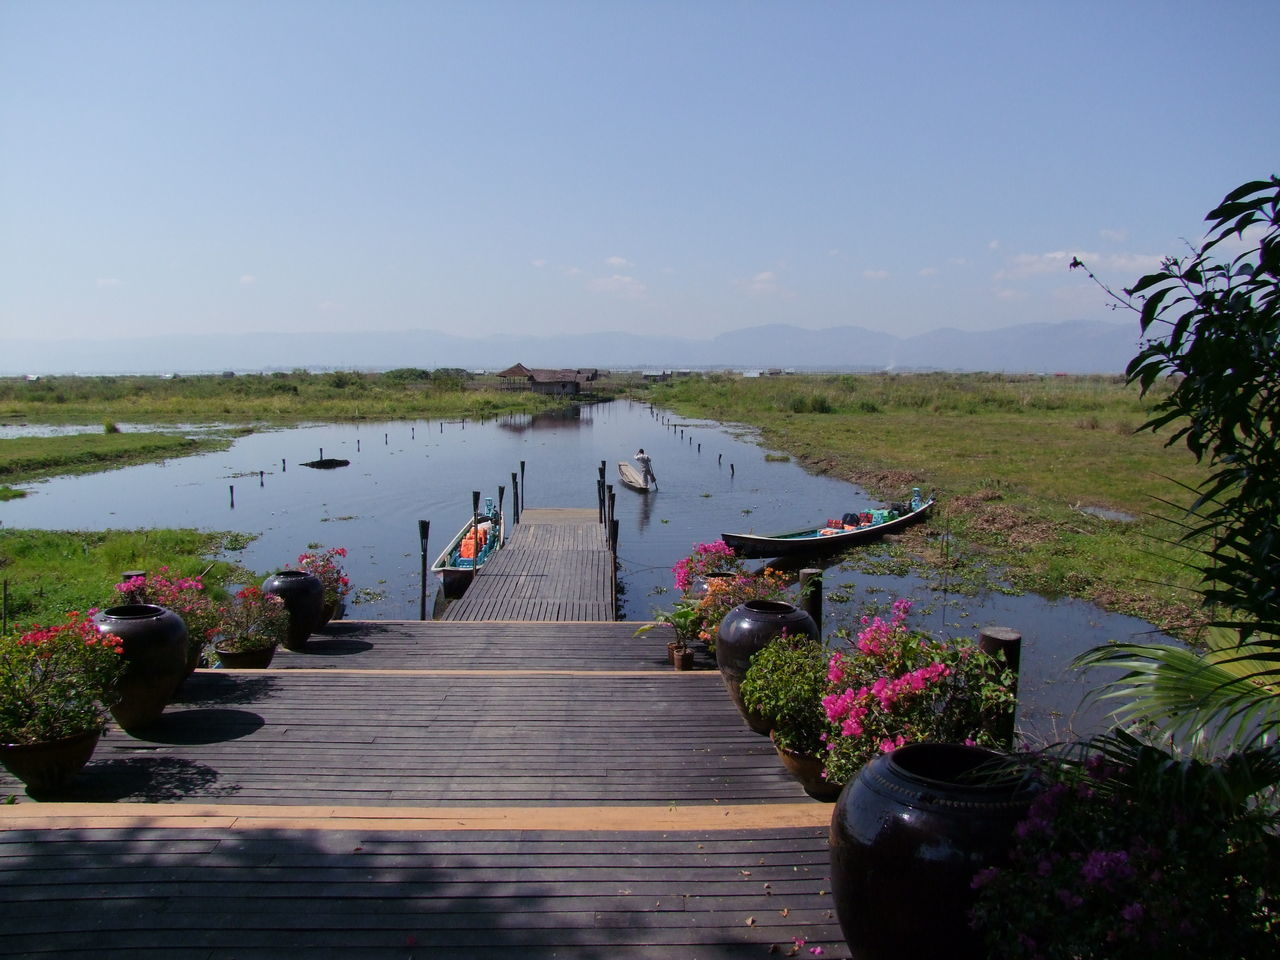 Jetty at Inle Villa Resort Beauty In Nature Blue Sky Composition Floating Vegetable Garden Flowering Shrubs Glassy Water Hotel Inle Lake Jetty Lake Lake View Mode Of Transport Myanmar Narrow Boat Nautical Vessel No People Outdoor Photography Scenics Sunlight And Shadow Tranquil Scene Tranquility Transportation Travel Destination Water Wooden Jetty